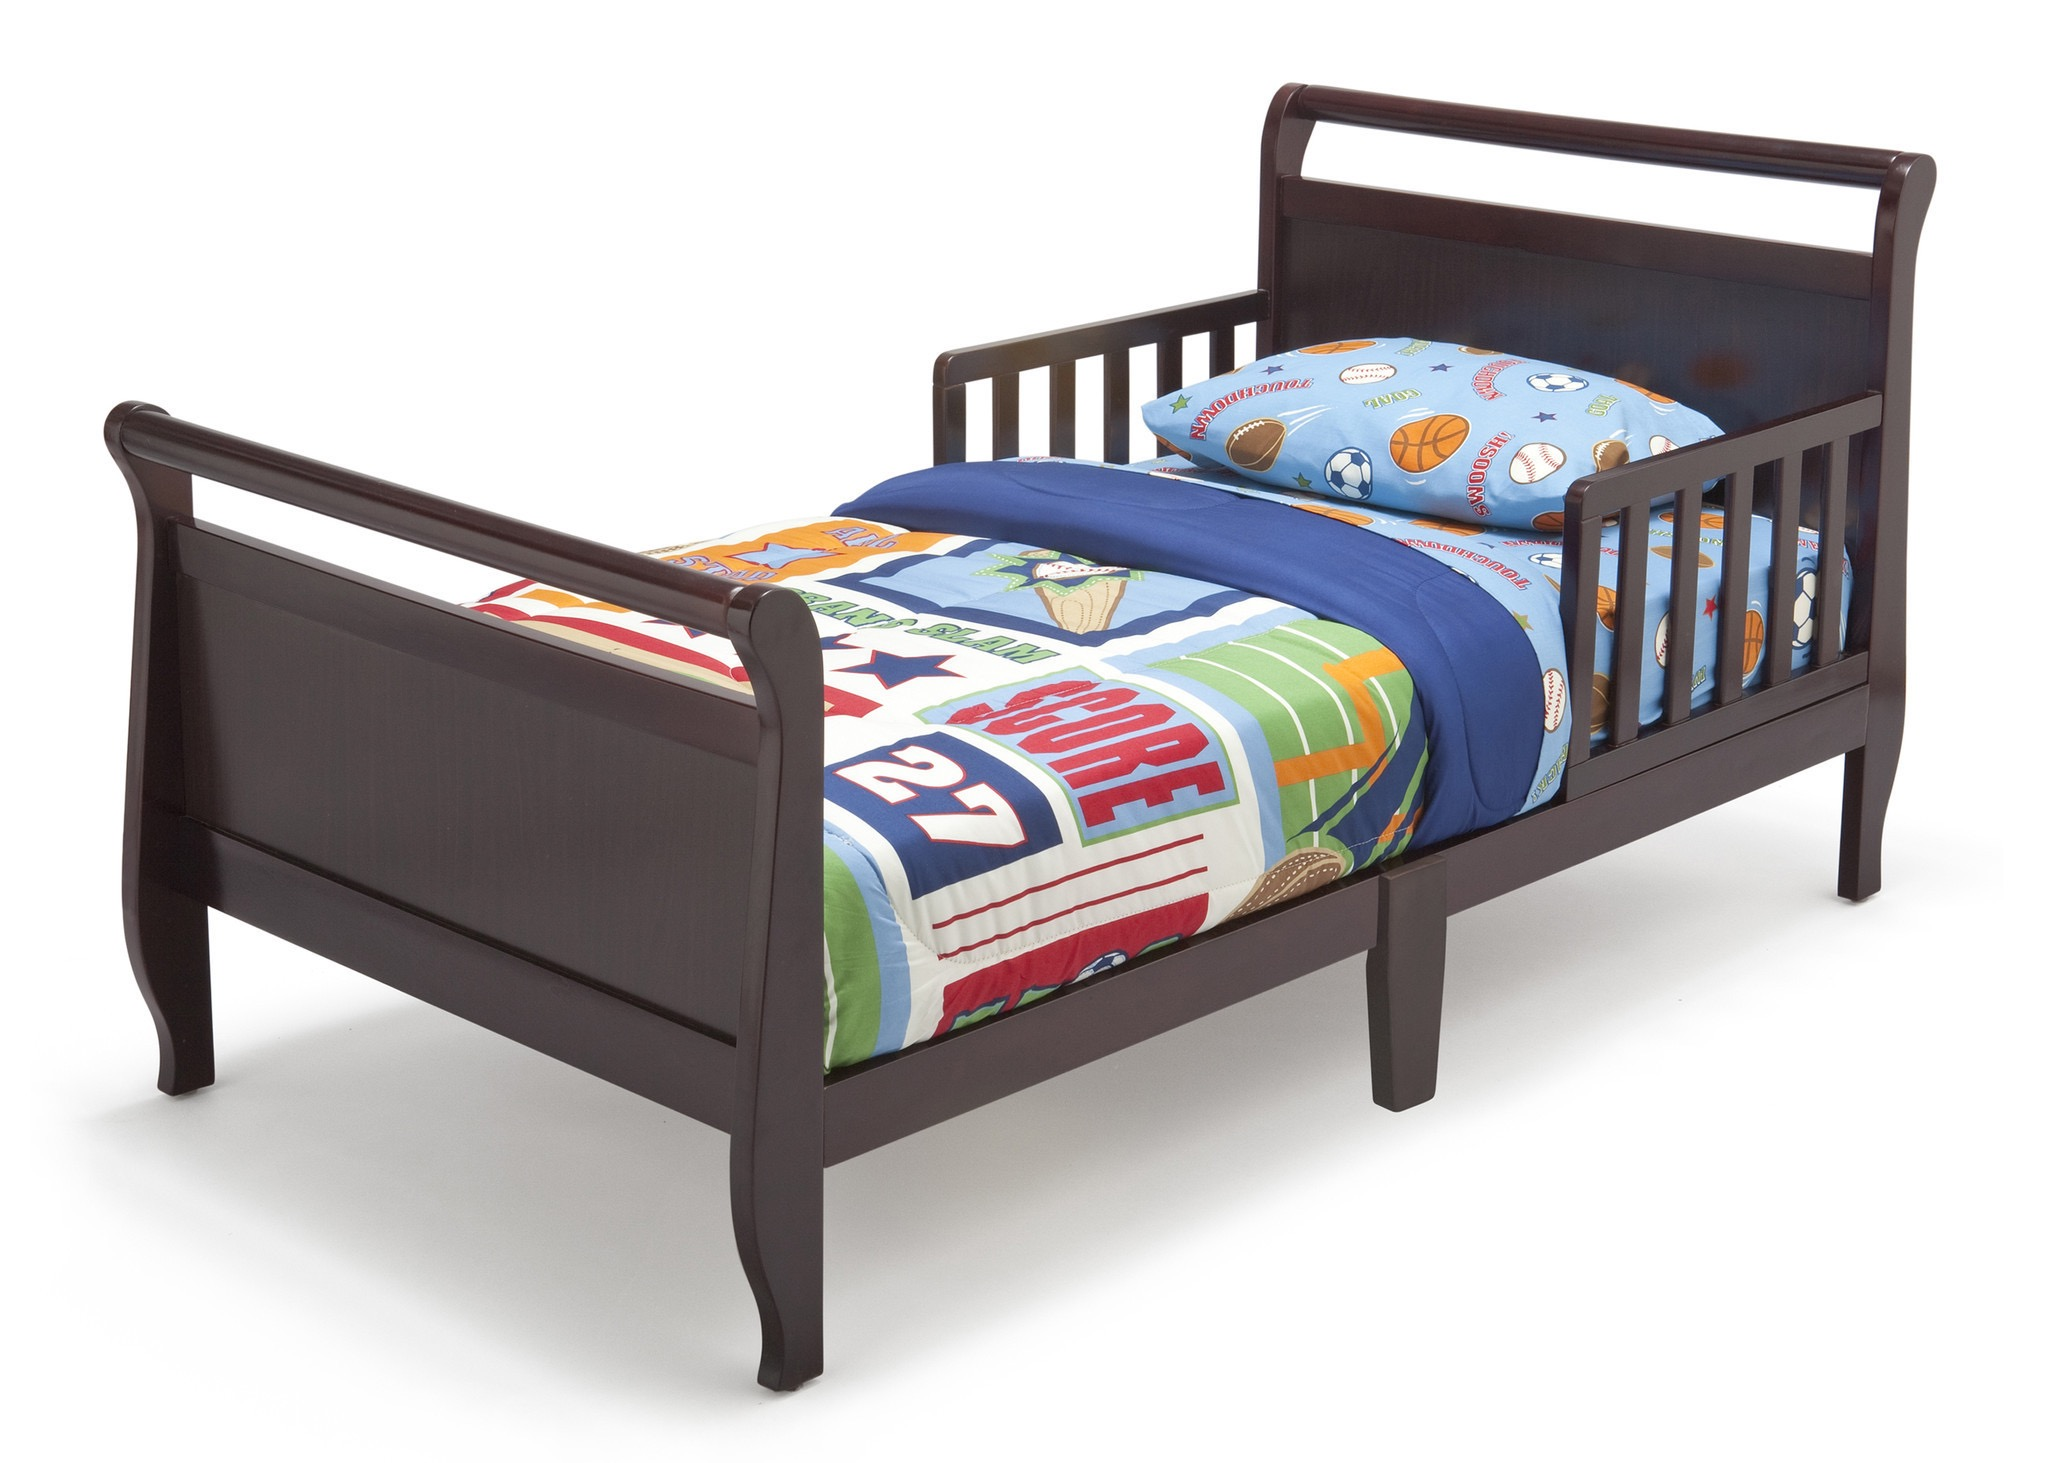 delta cars toddler bed instructions photo - 7